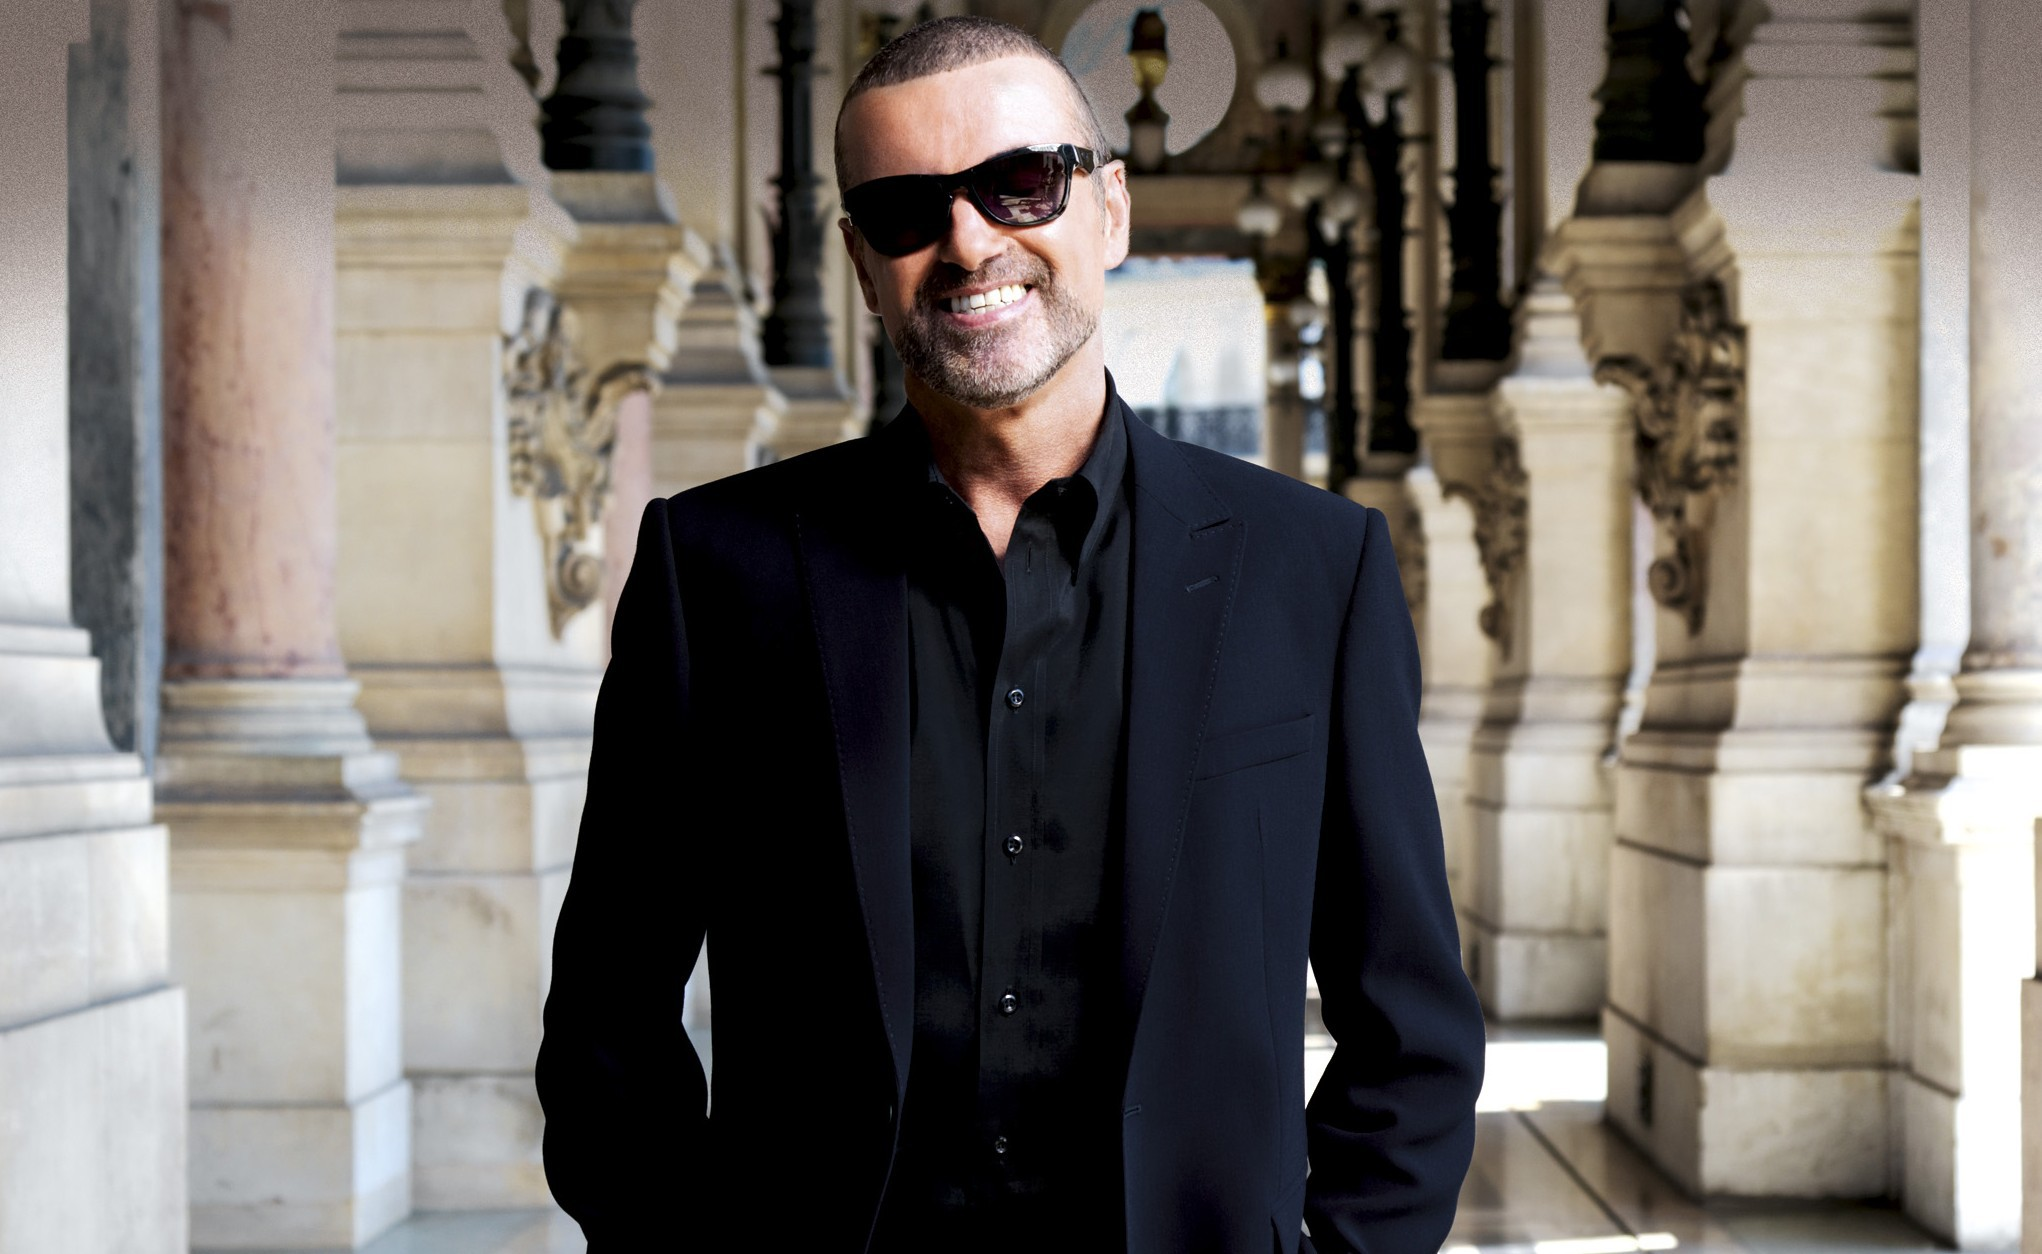 george michael celebrity smile wallpaper 625